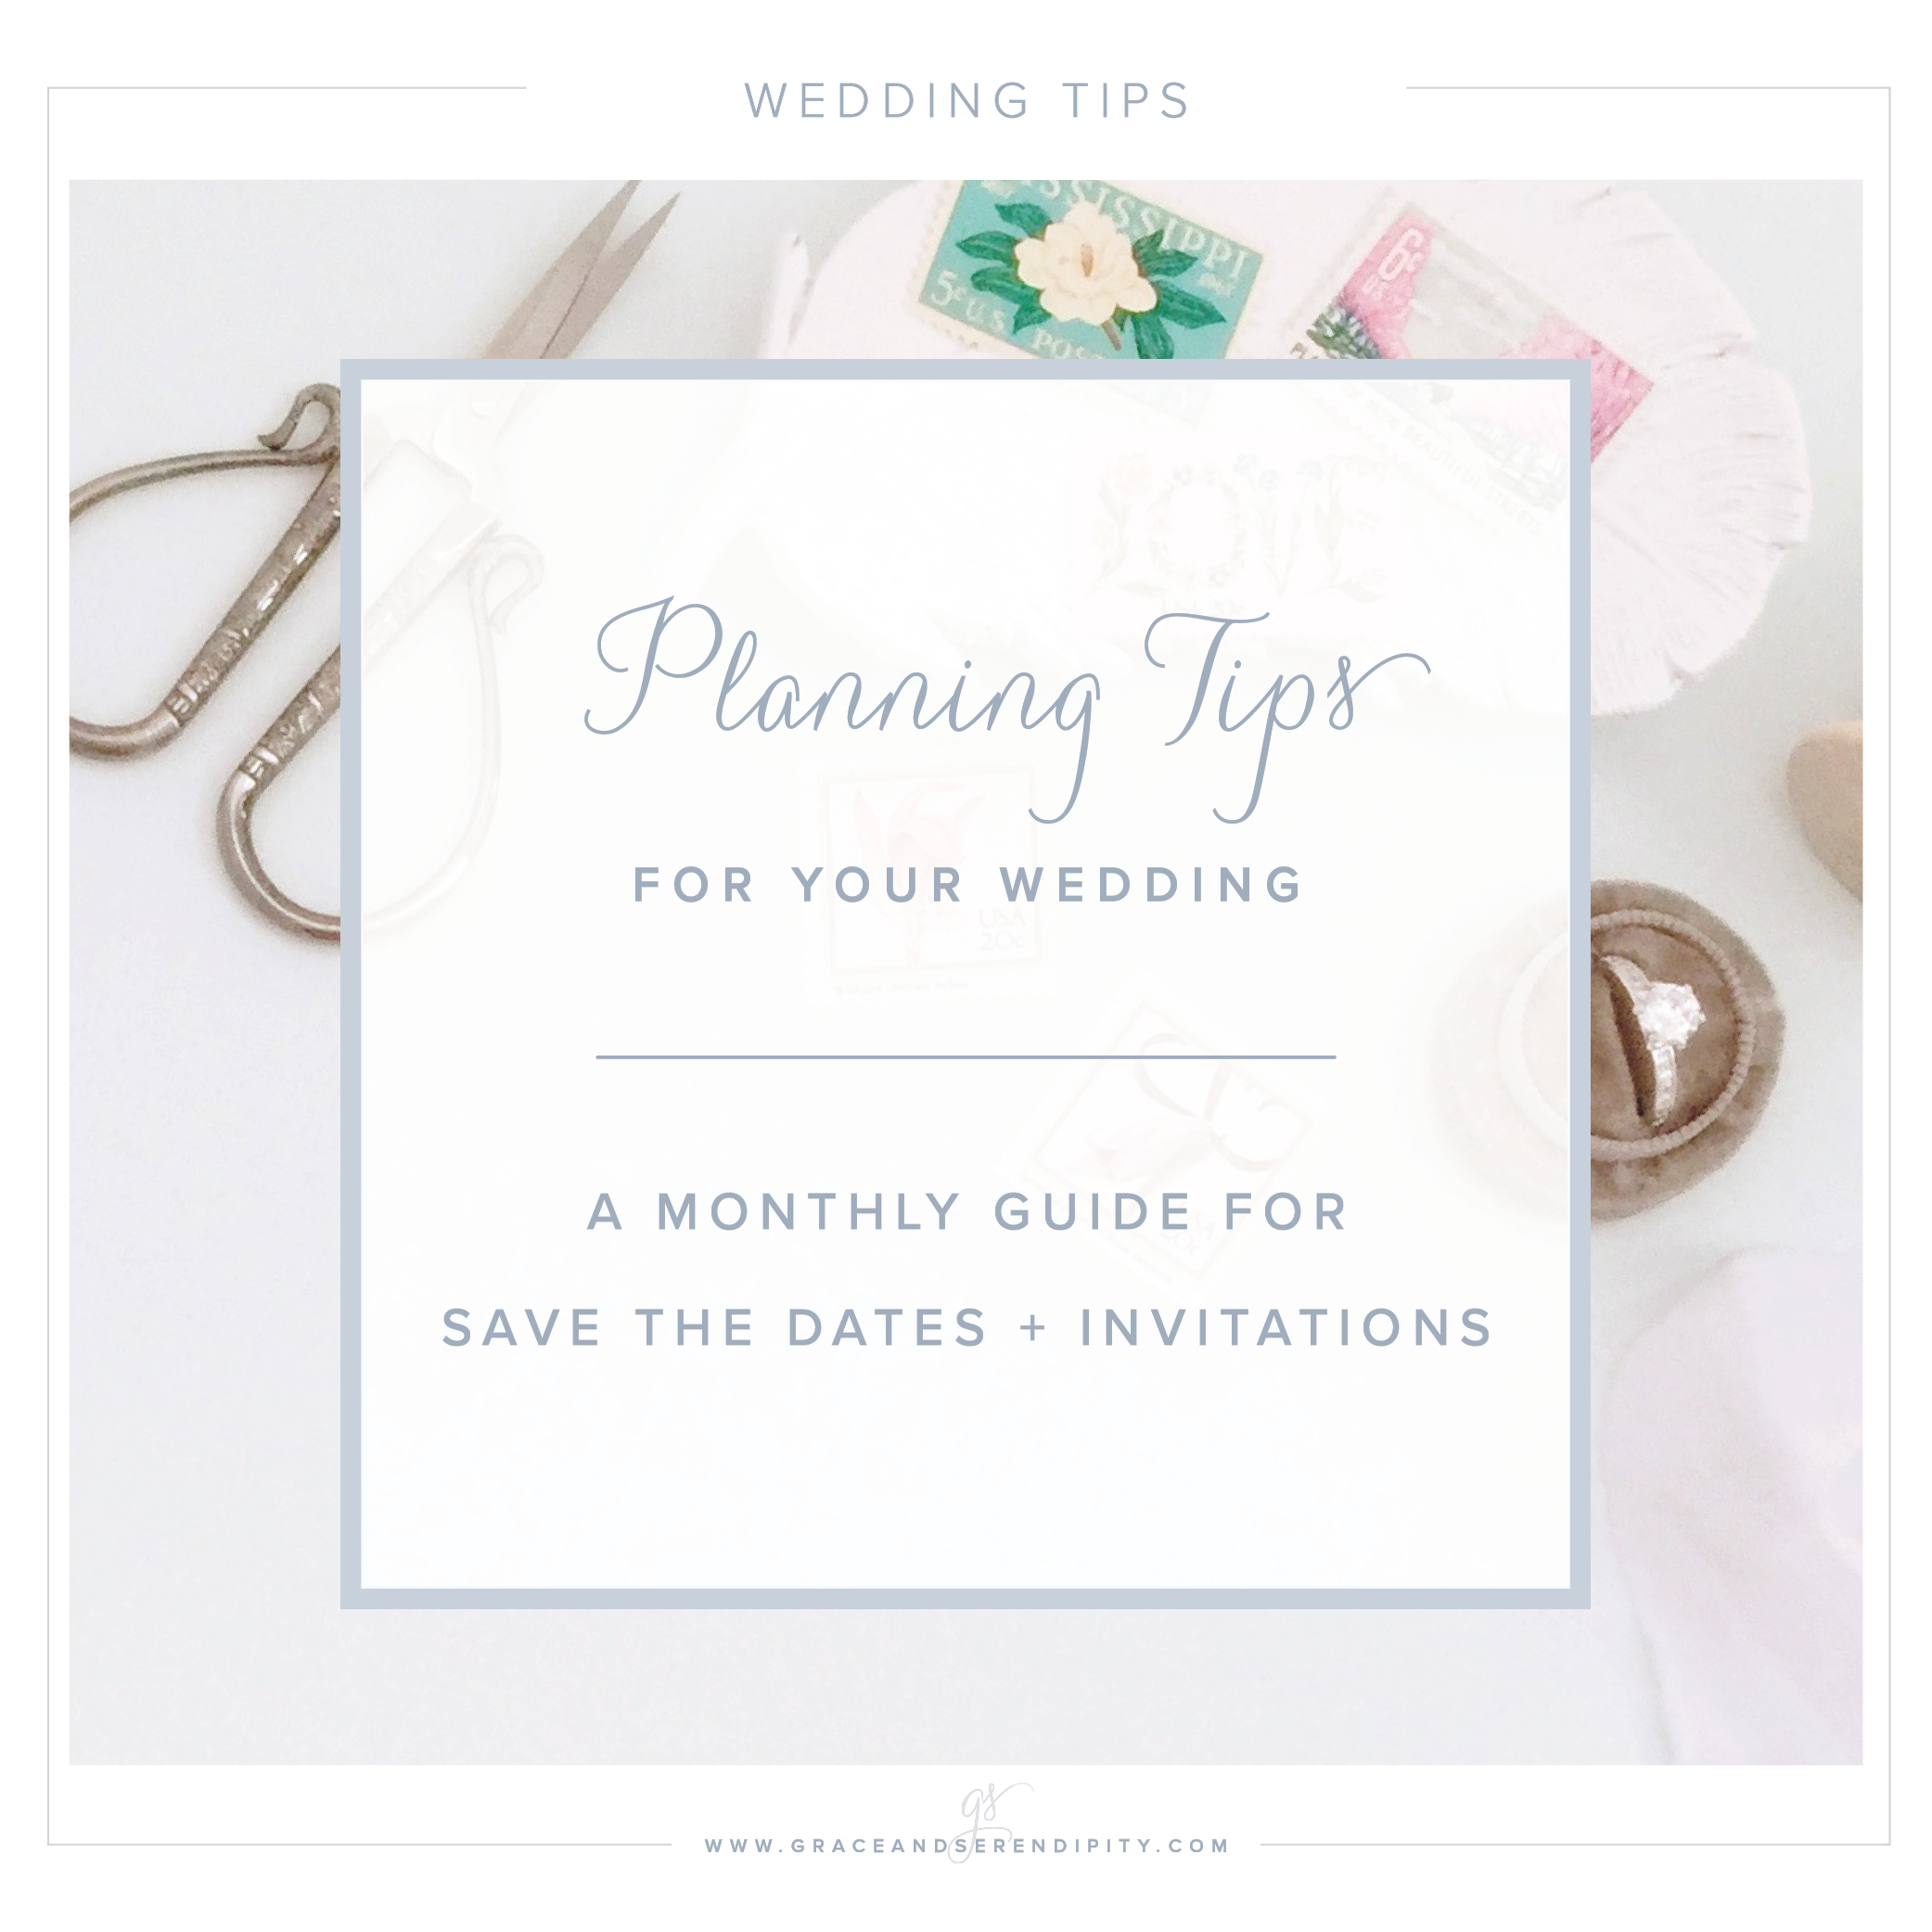 Wedding Tips: A Timeline For Custom Save The Dates And Wedding Invitations